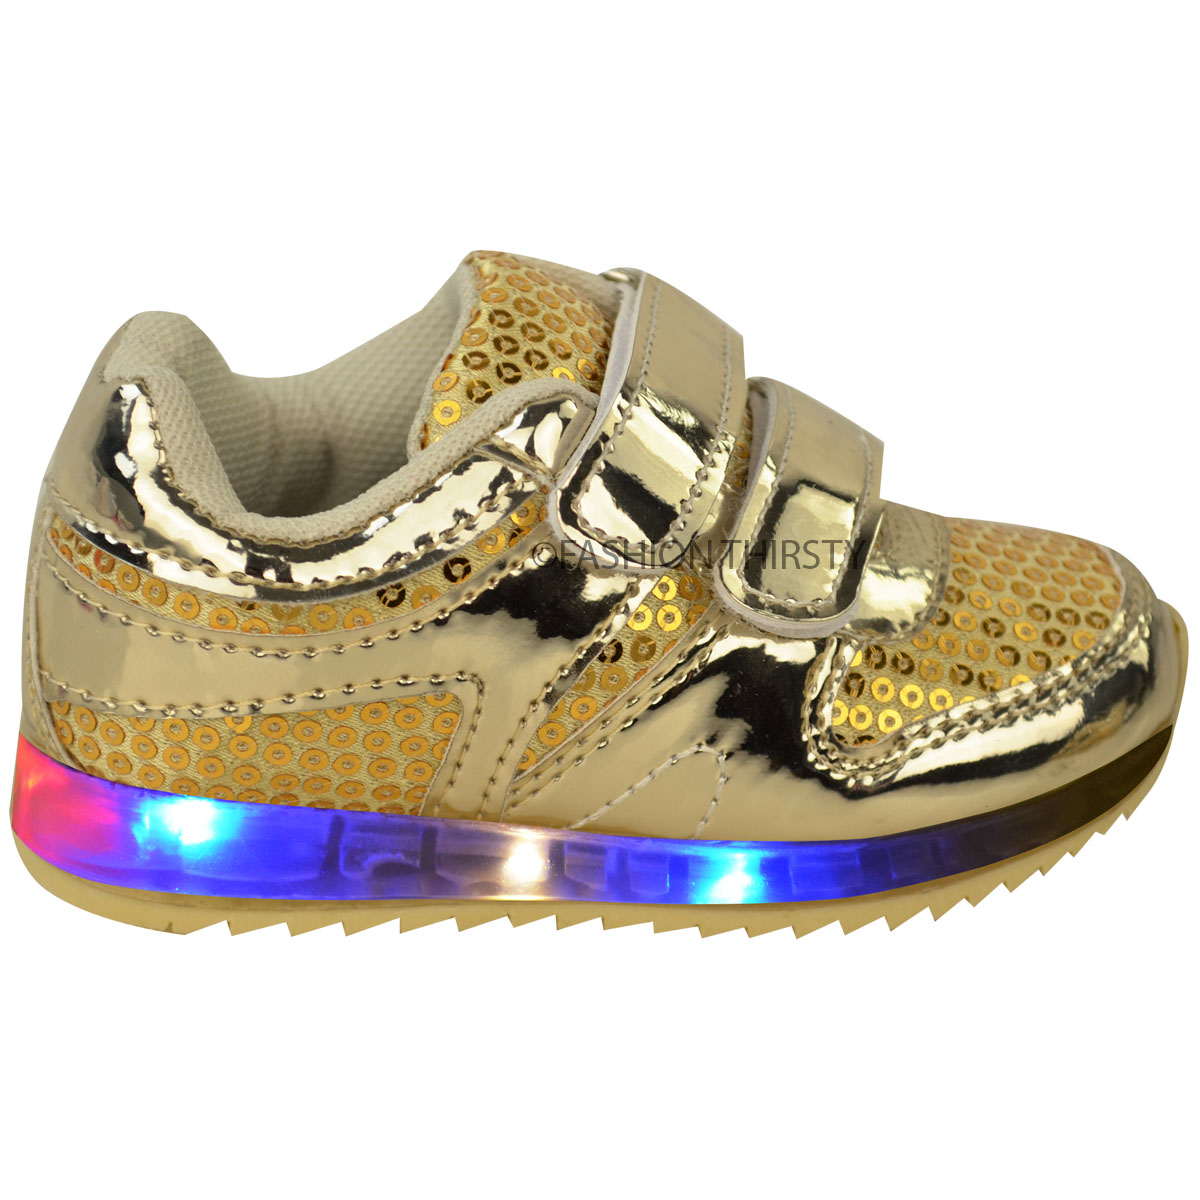 2c9231110b52 New Girls Kids Babies LED Light Up Trainers Strappy Sneakers Toddler ...